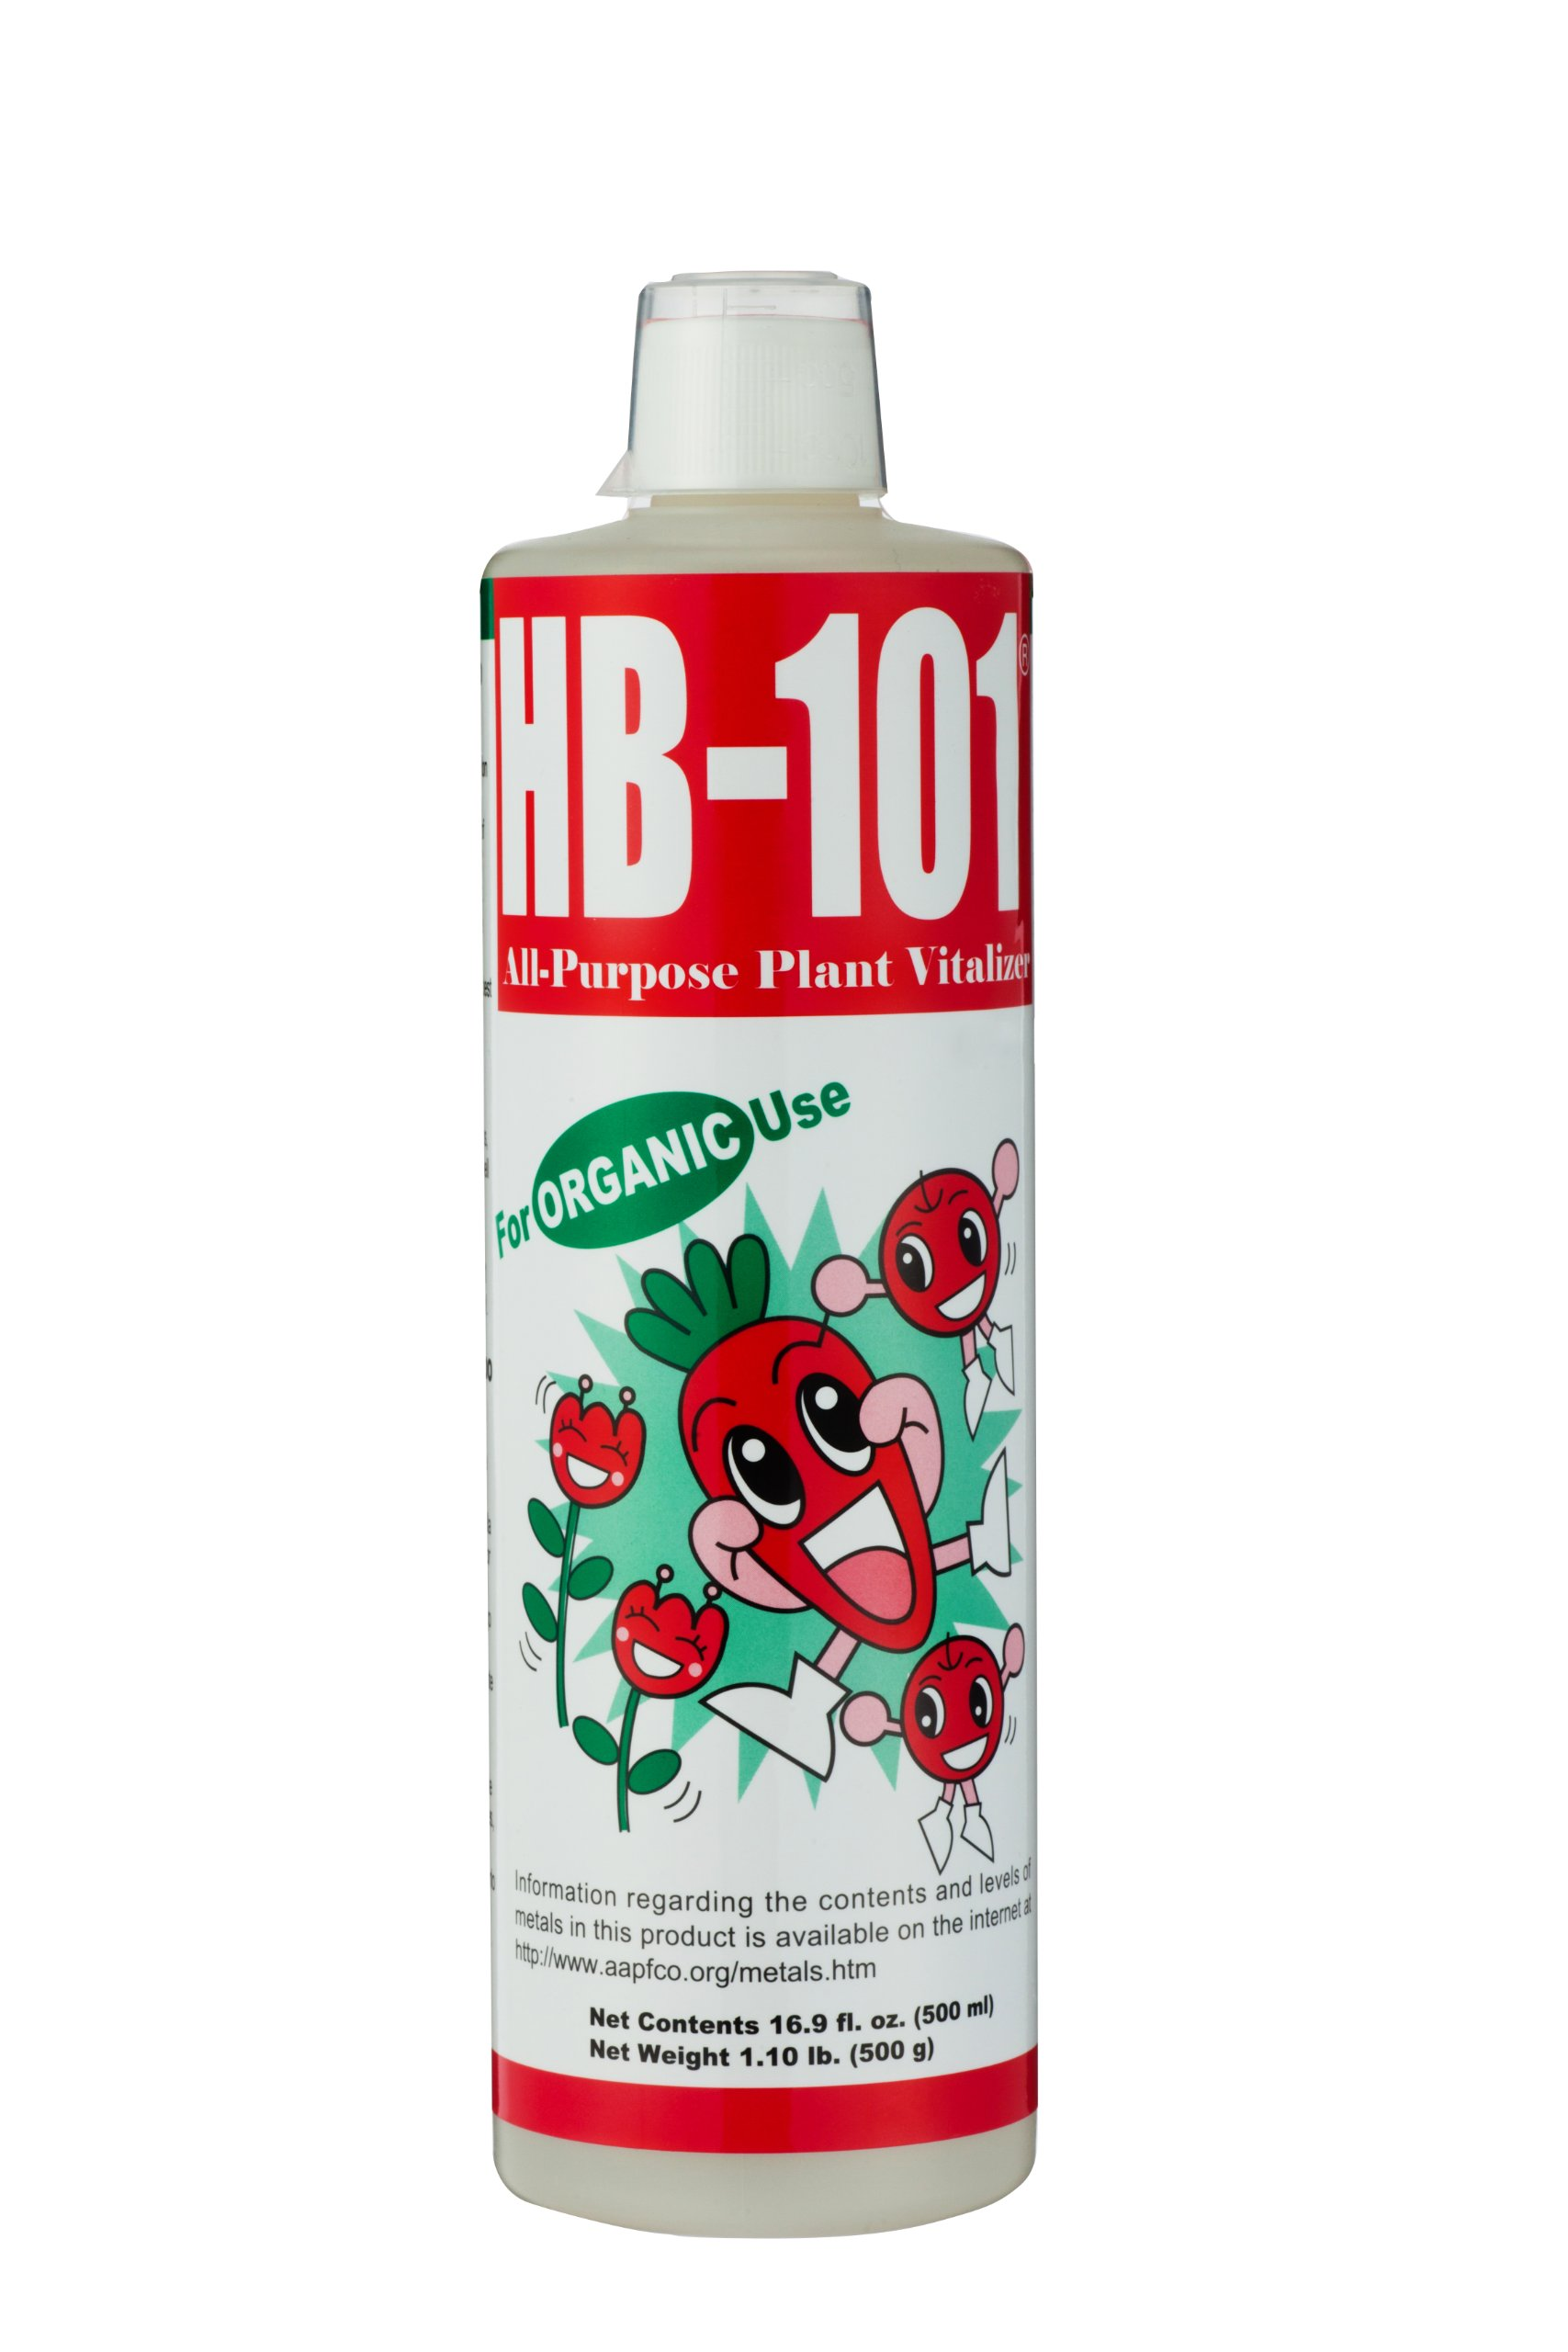 HB-101 All Purpose Plant Vitalizer, 16.9 Fluid Ounce by HB-101